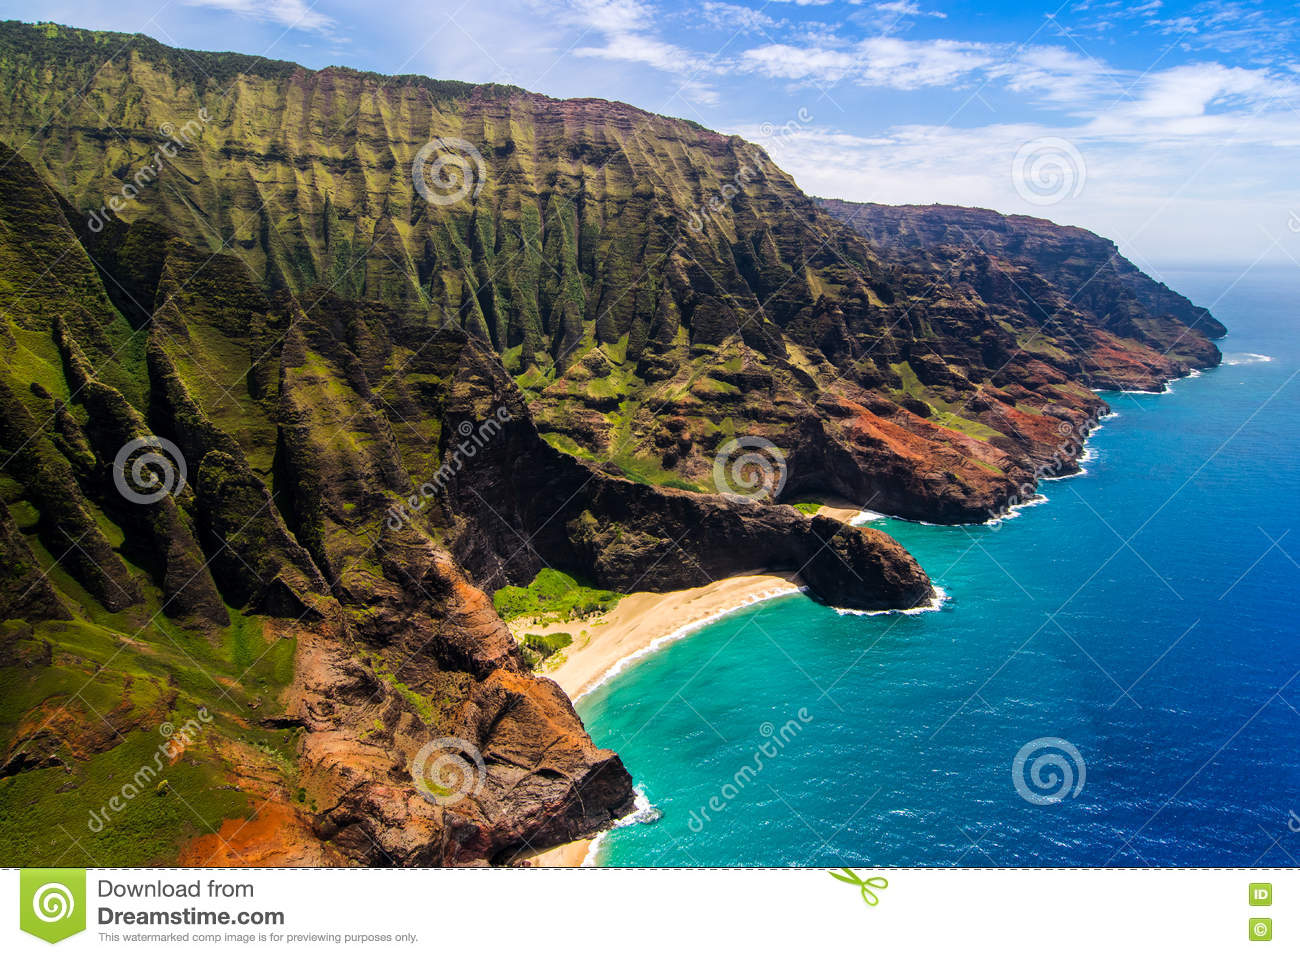 Aerial landscape view of Honopu Arch at Na Pali coastline, Kauai